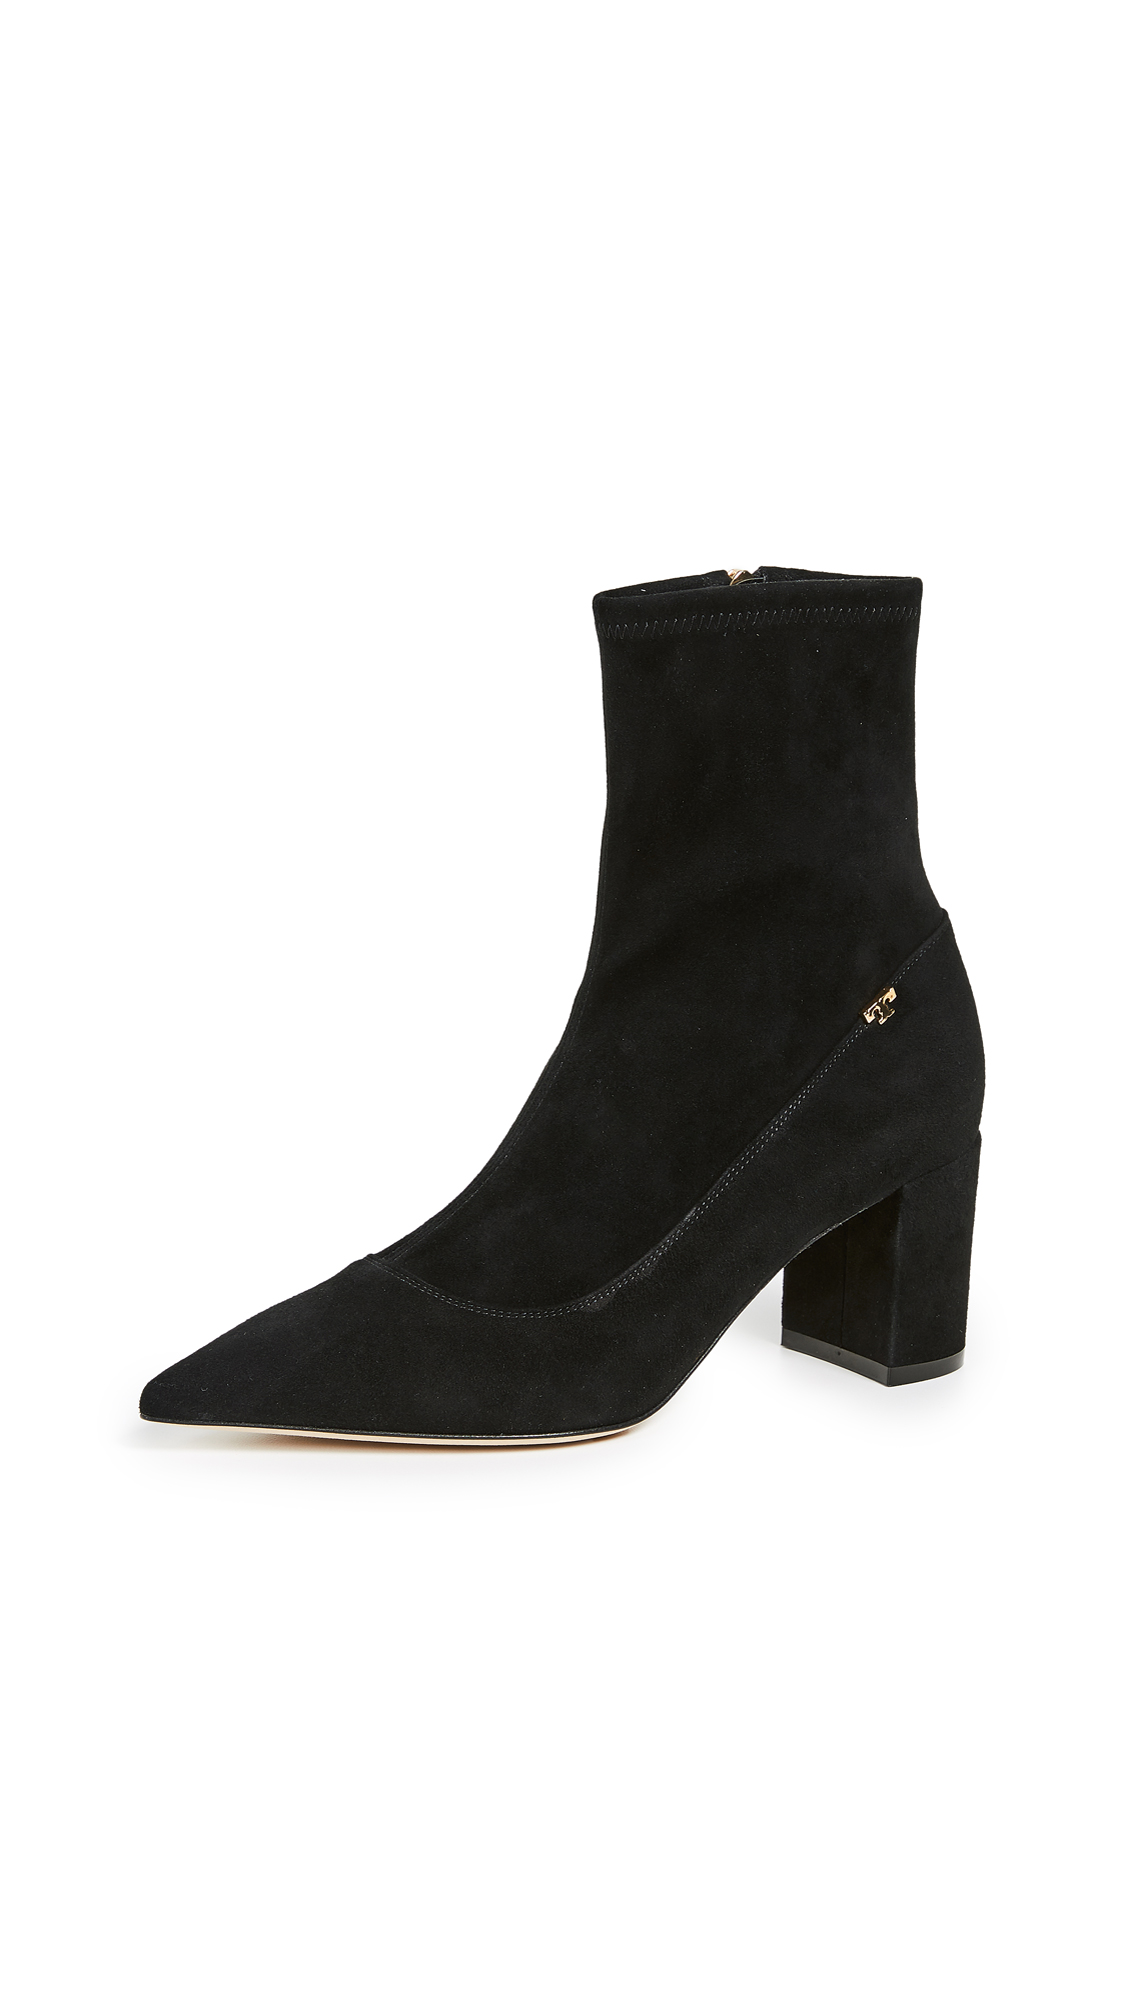 Tory Burch Penelope 65mm Booties - Perfect Black